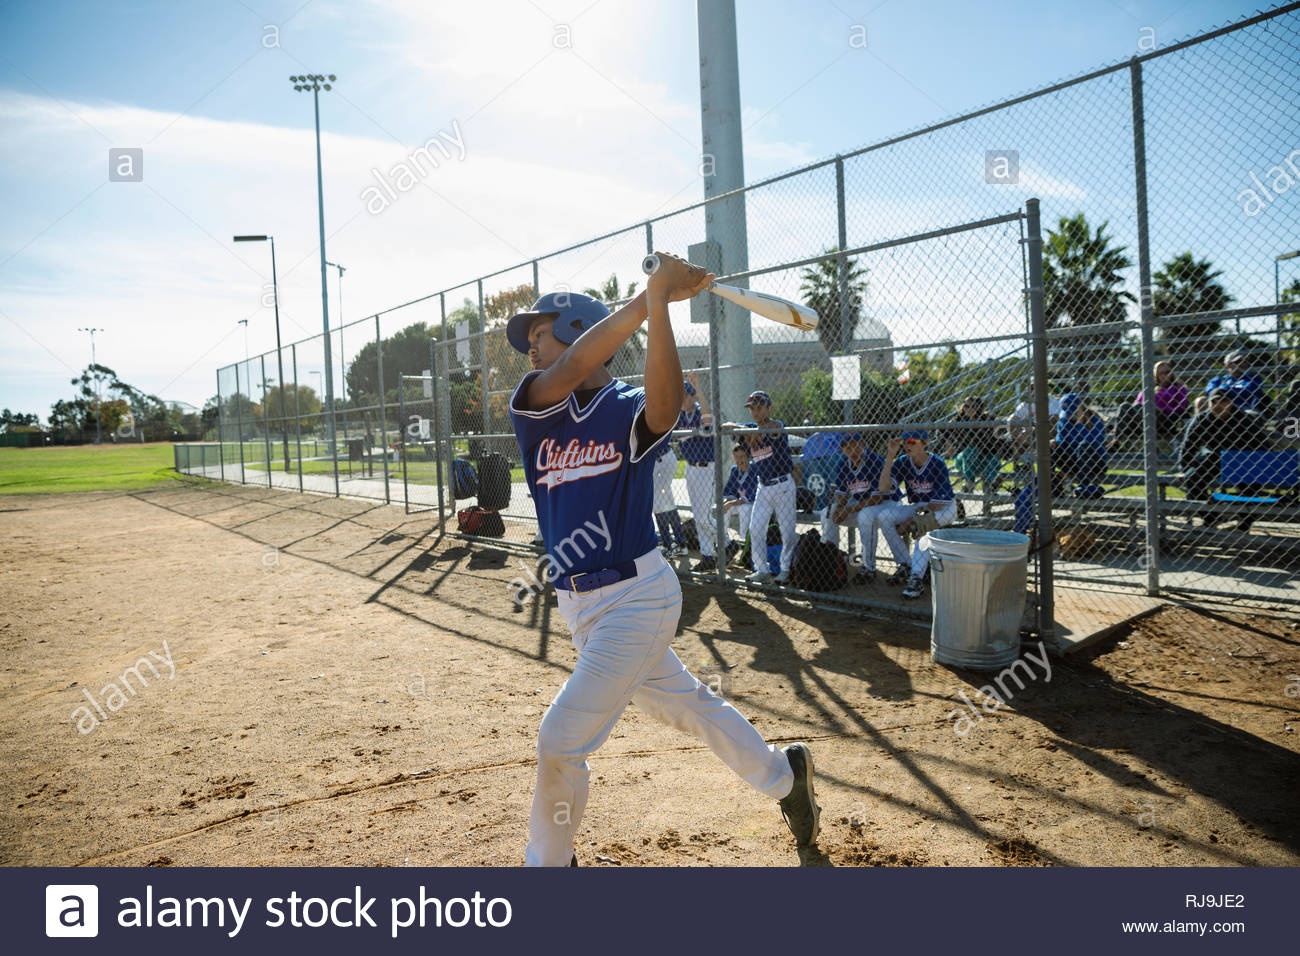 Baseball player swinging bat sur terrain ensoleillé Photo Stock